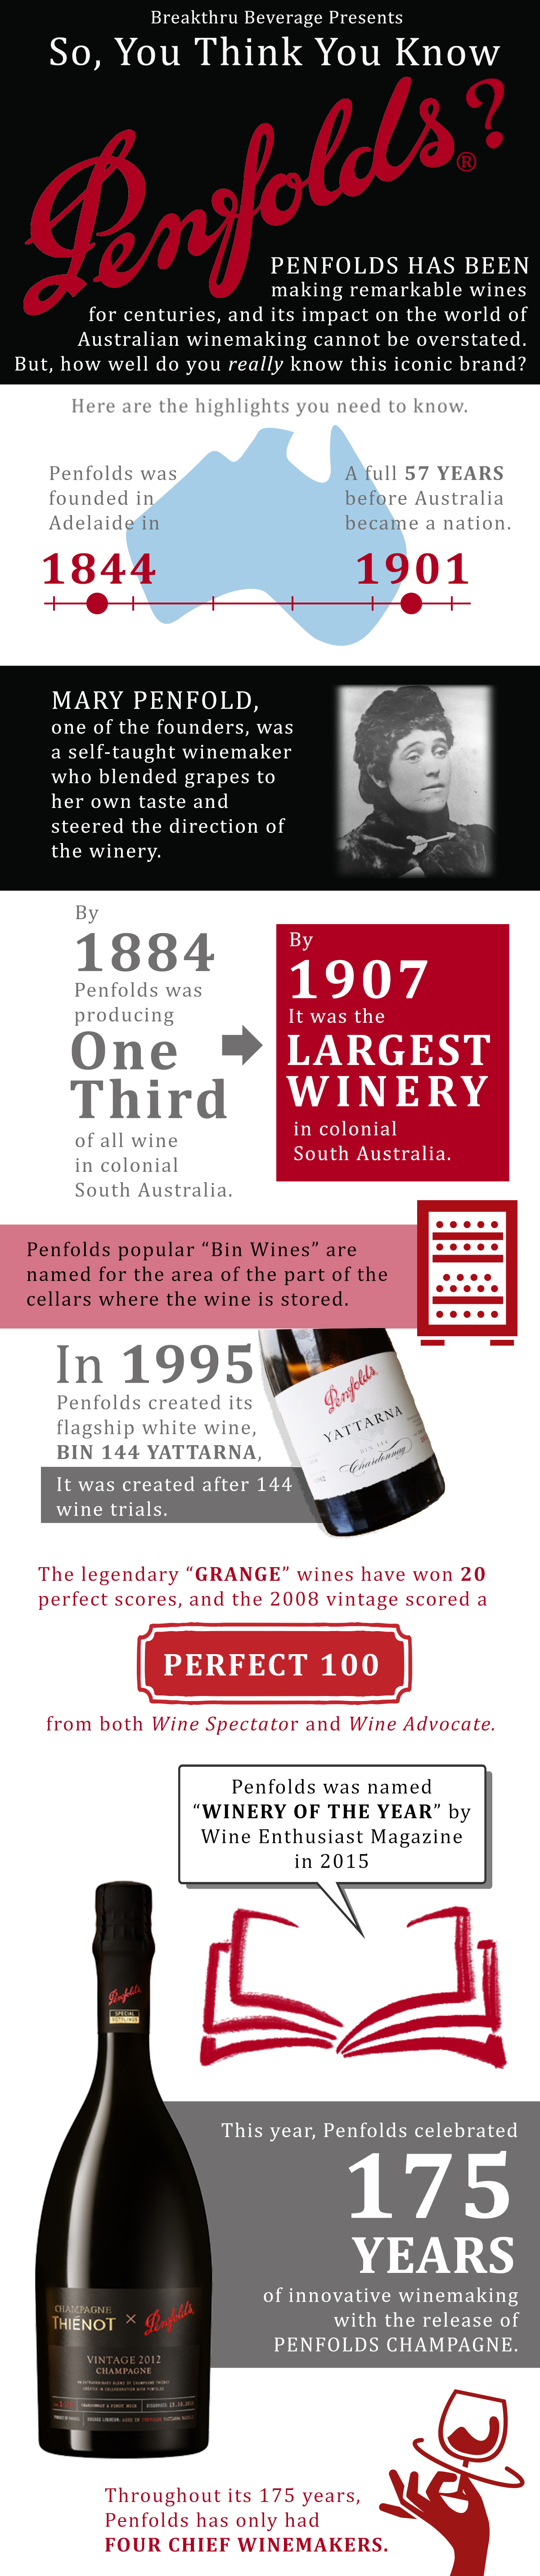 So, You Think You Know Penfolds?